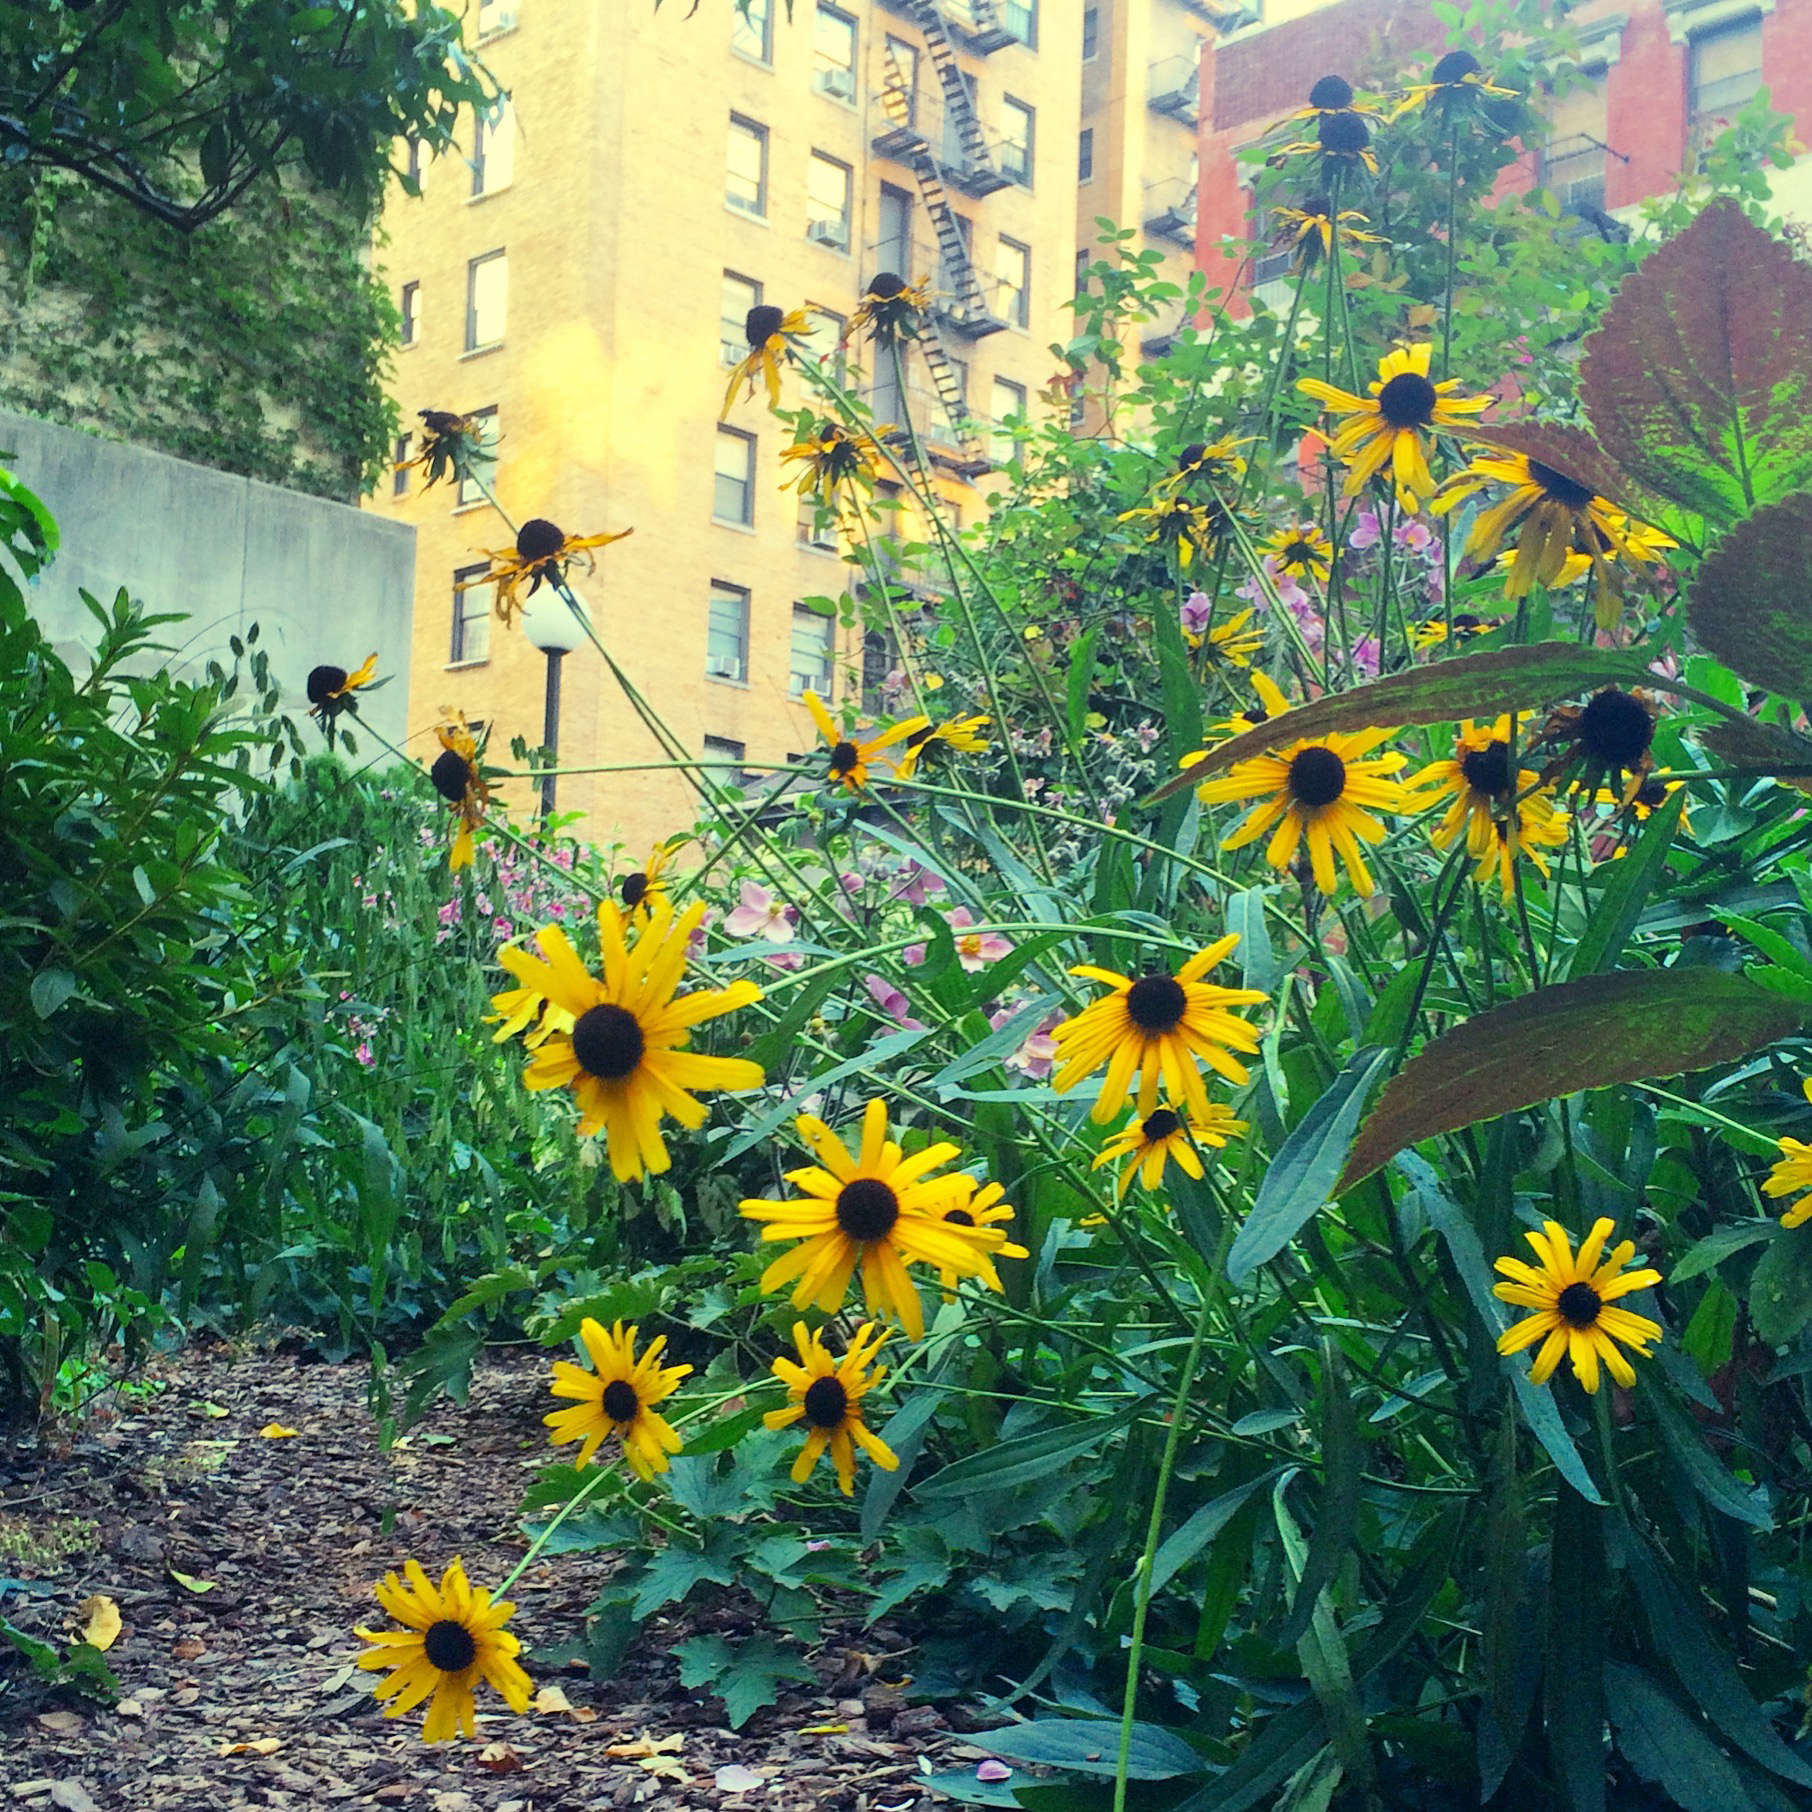 Hardy coleus, black-eyed Susan (Rudbeckia hirta), and Japanese anemones grow alongside a mulched path.